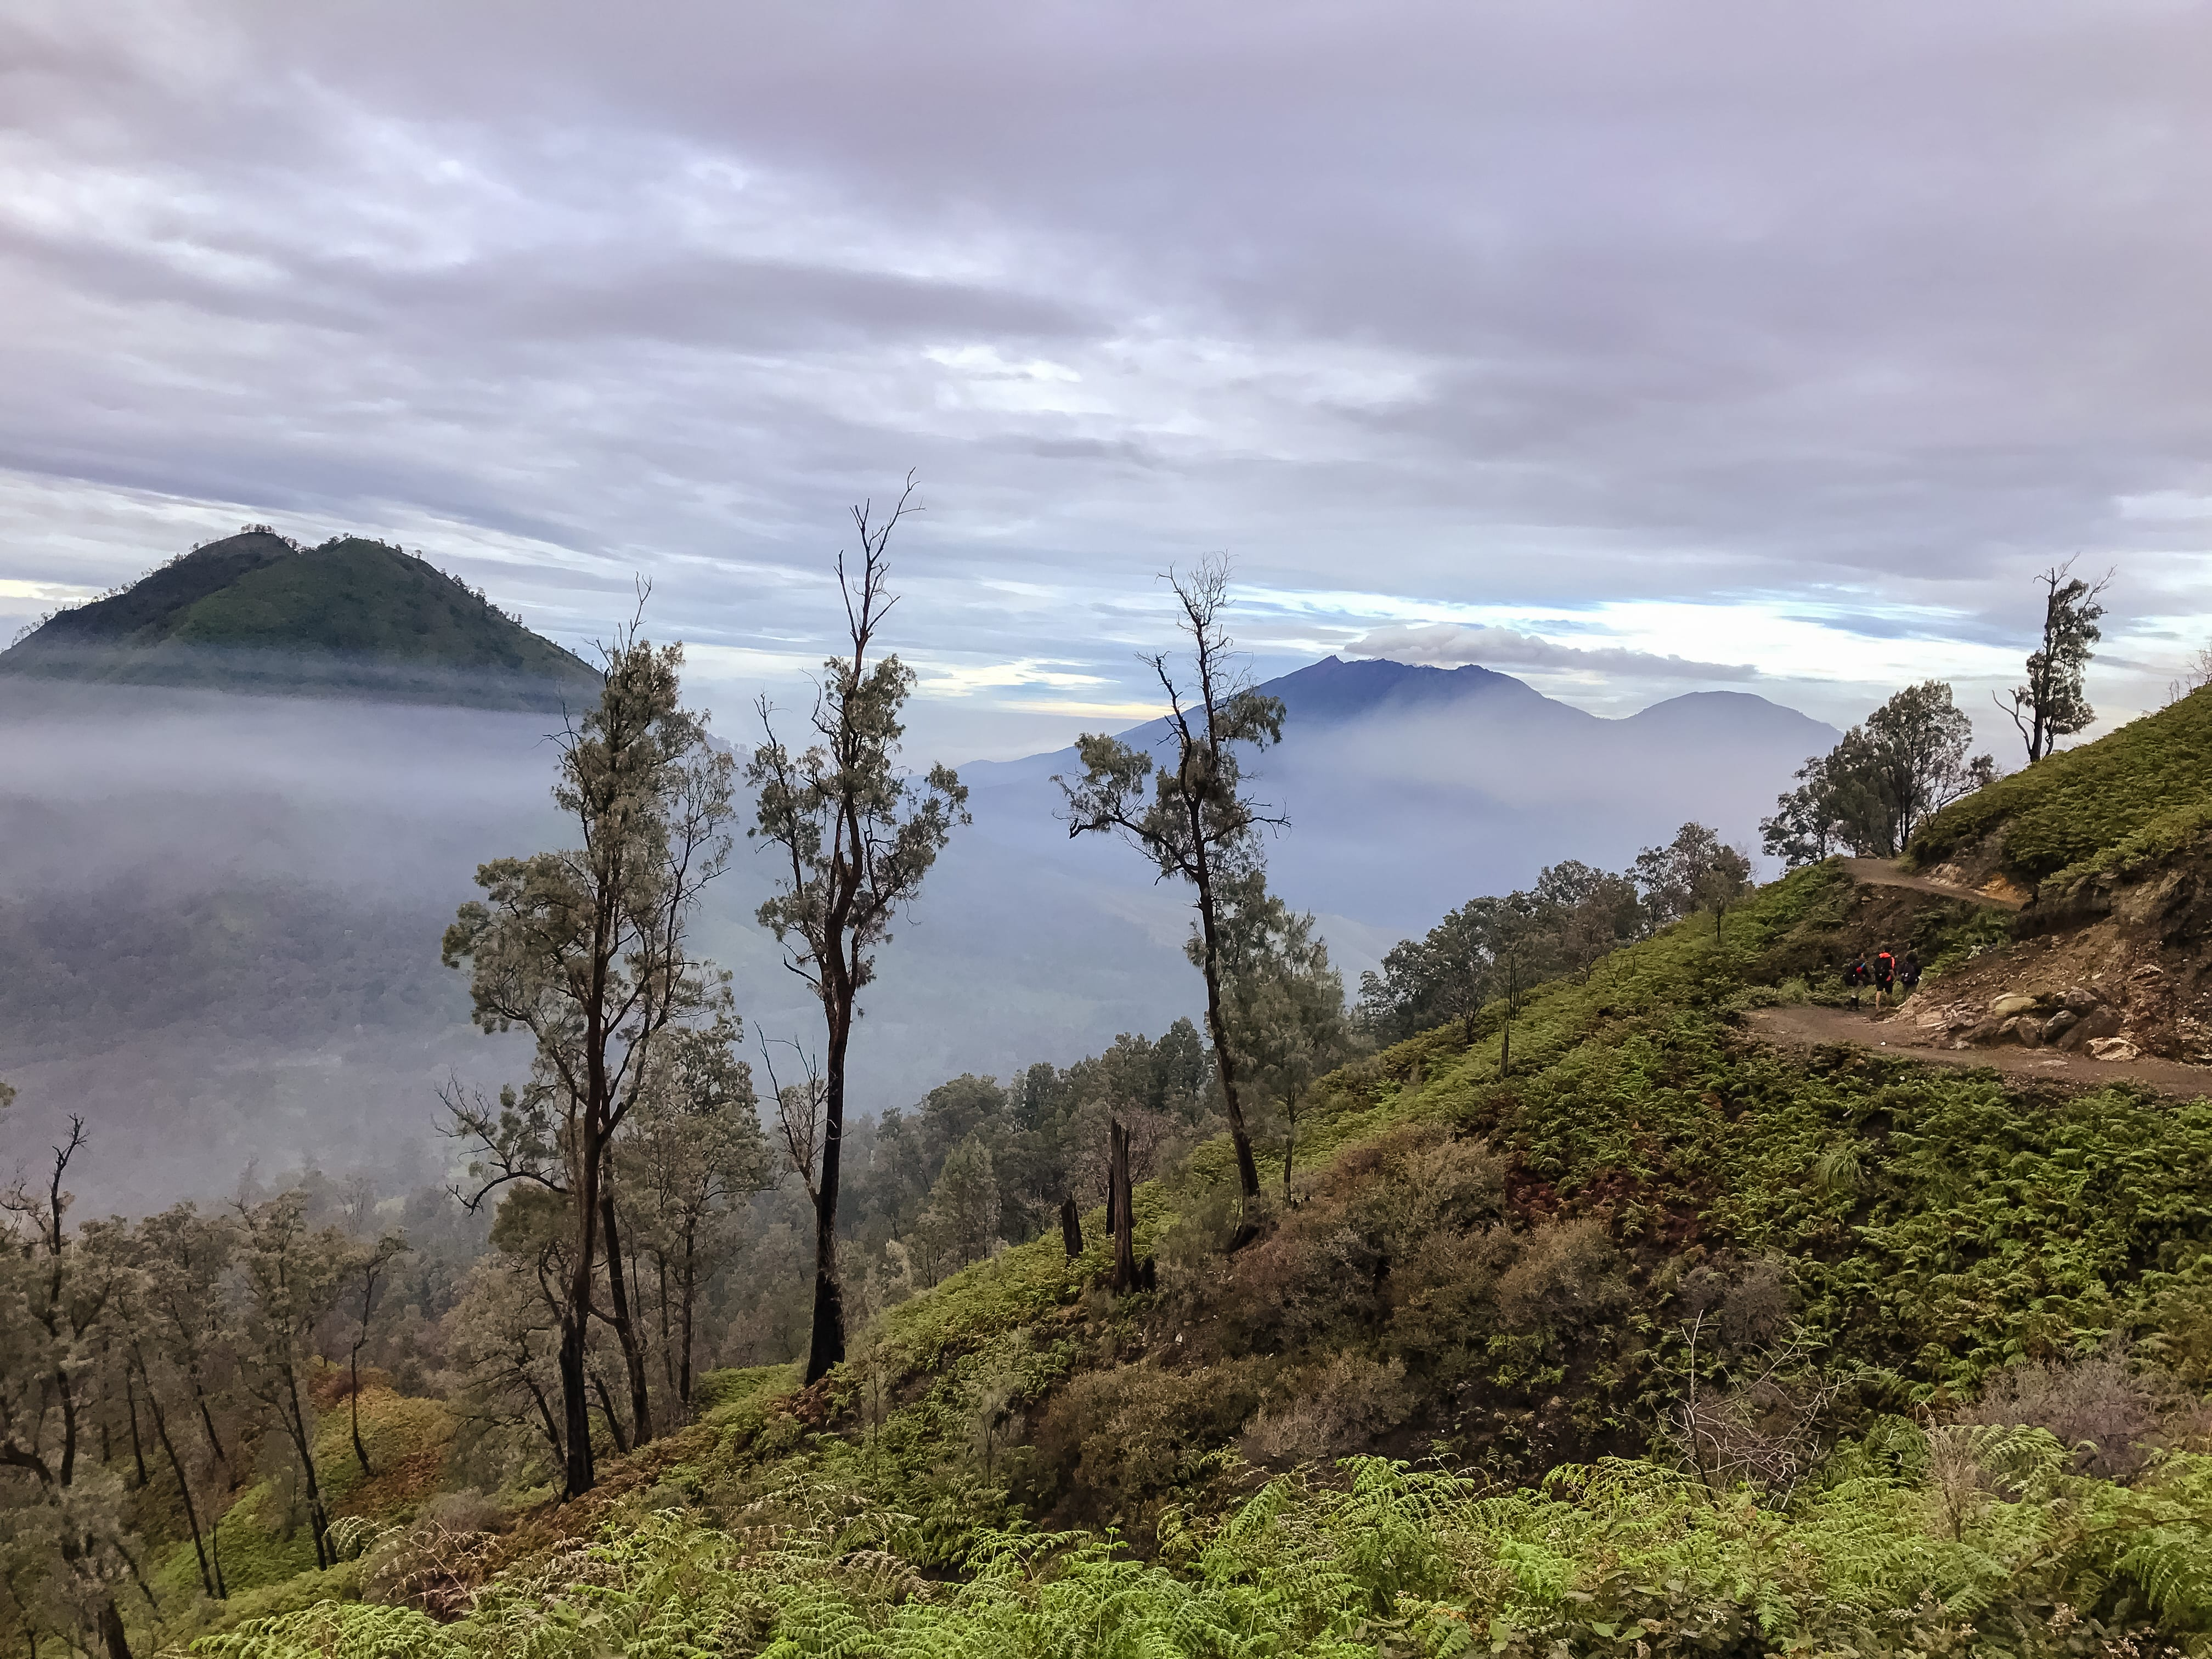 The route up Ijen volcano is revealed | The Silver Nomad